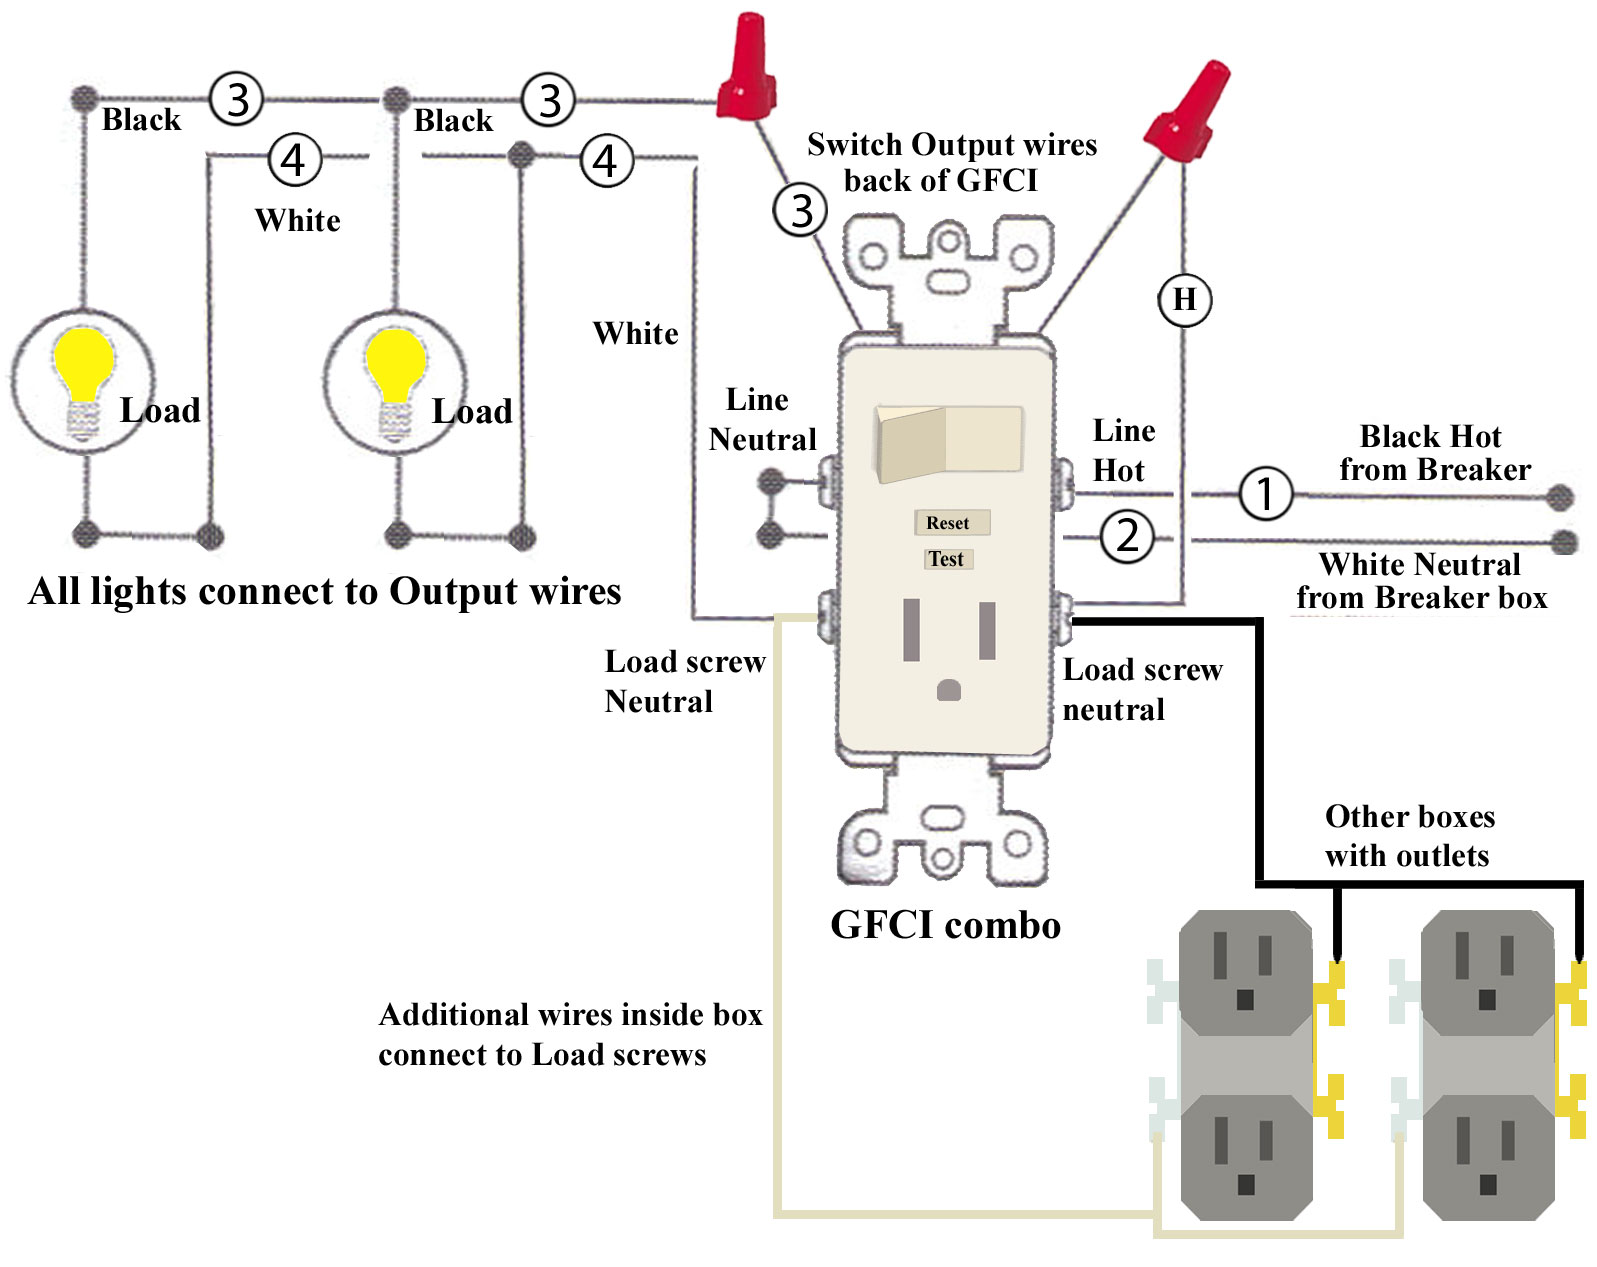 Leviton Combination Switch Wiring Manual Guide Diagram Same Two Lights How To Install And Troubleshoot Gfci Rh Waterheatertimer Org